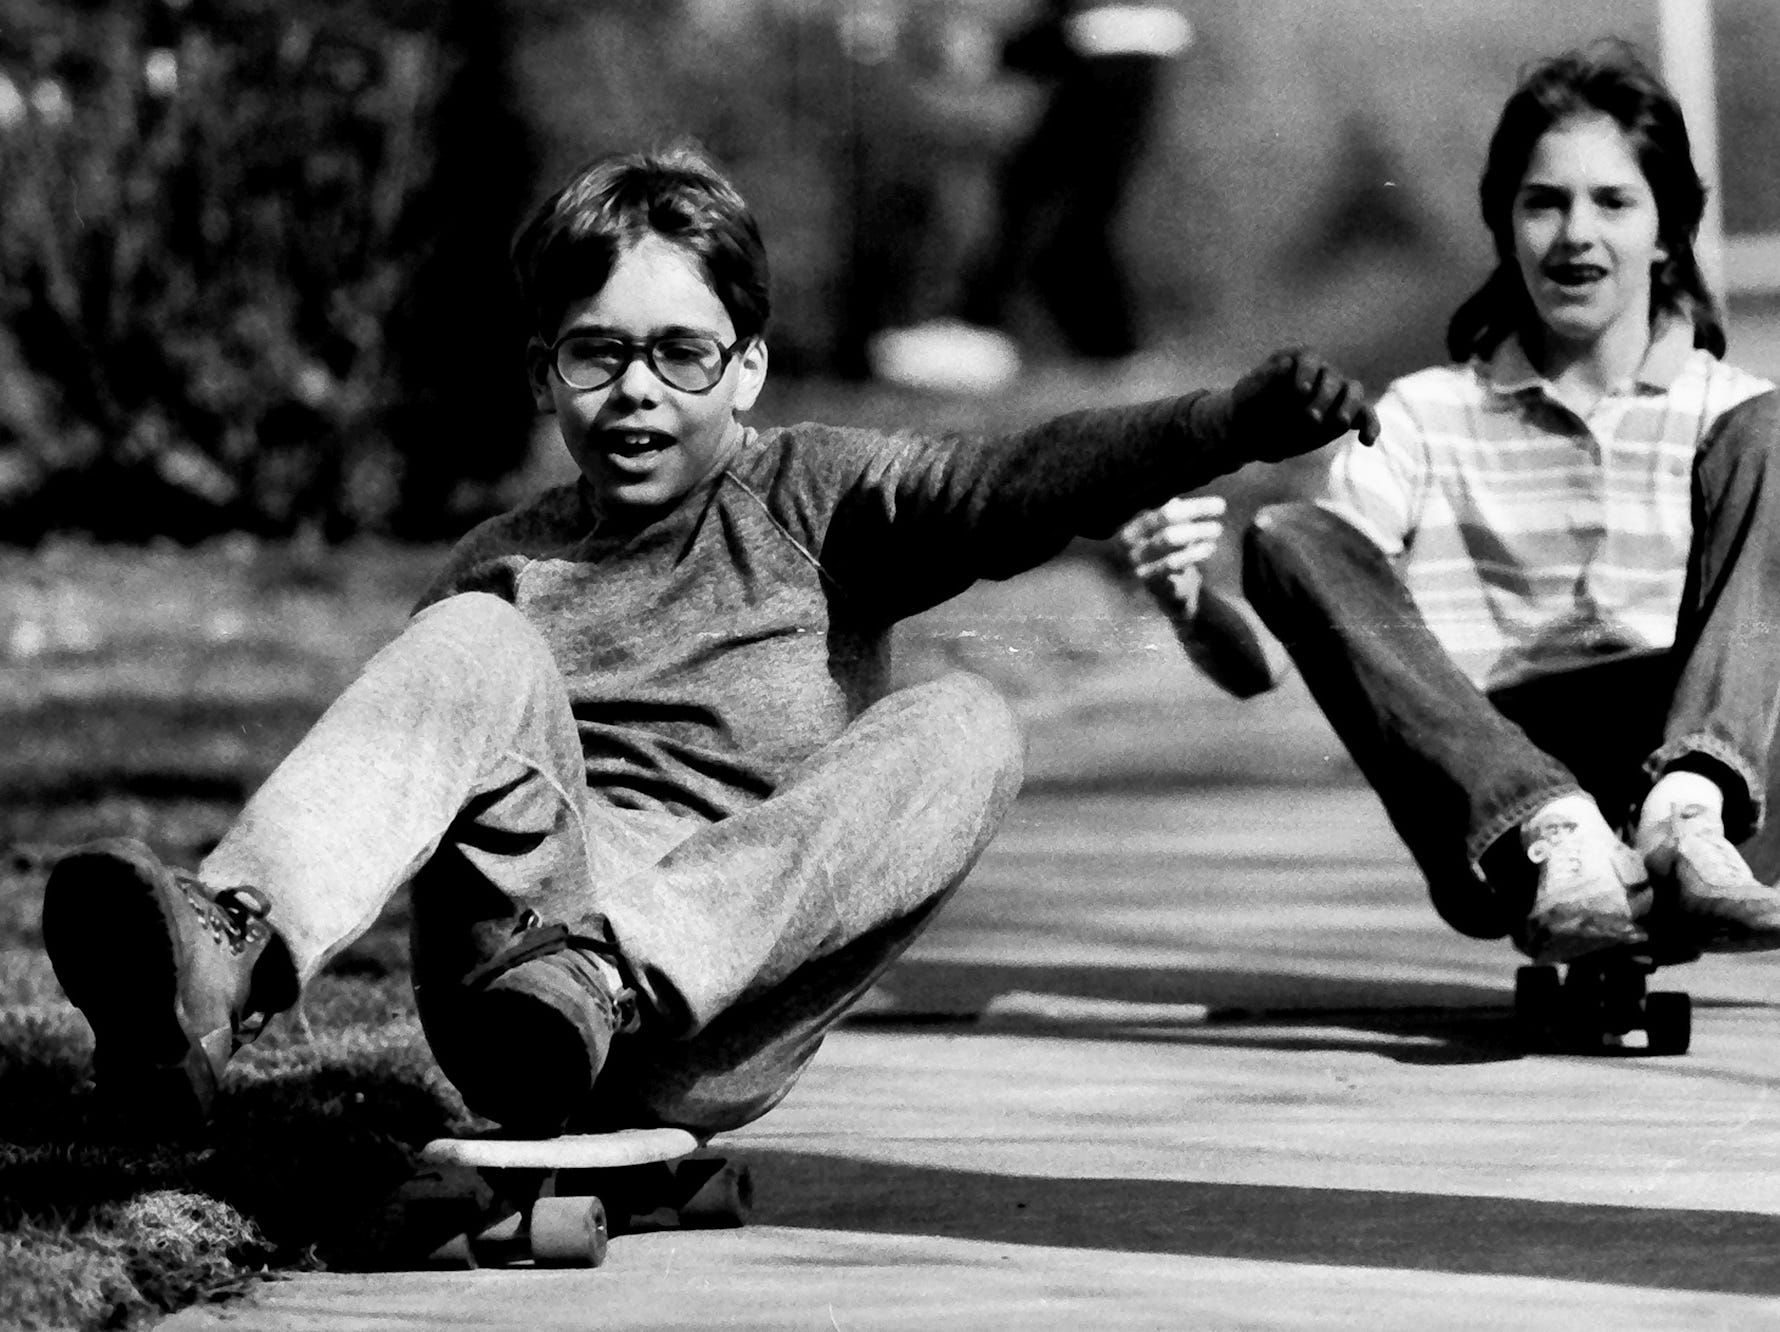 In 1985, boys sat on skateboards and rode down sidewalks.